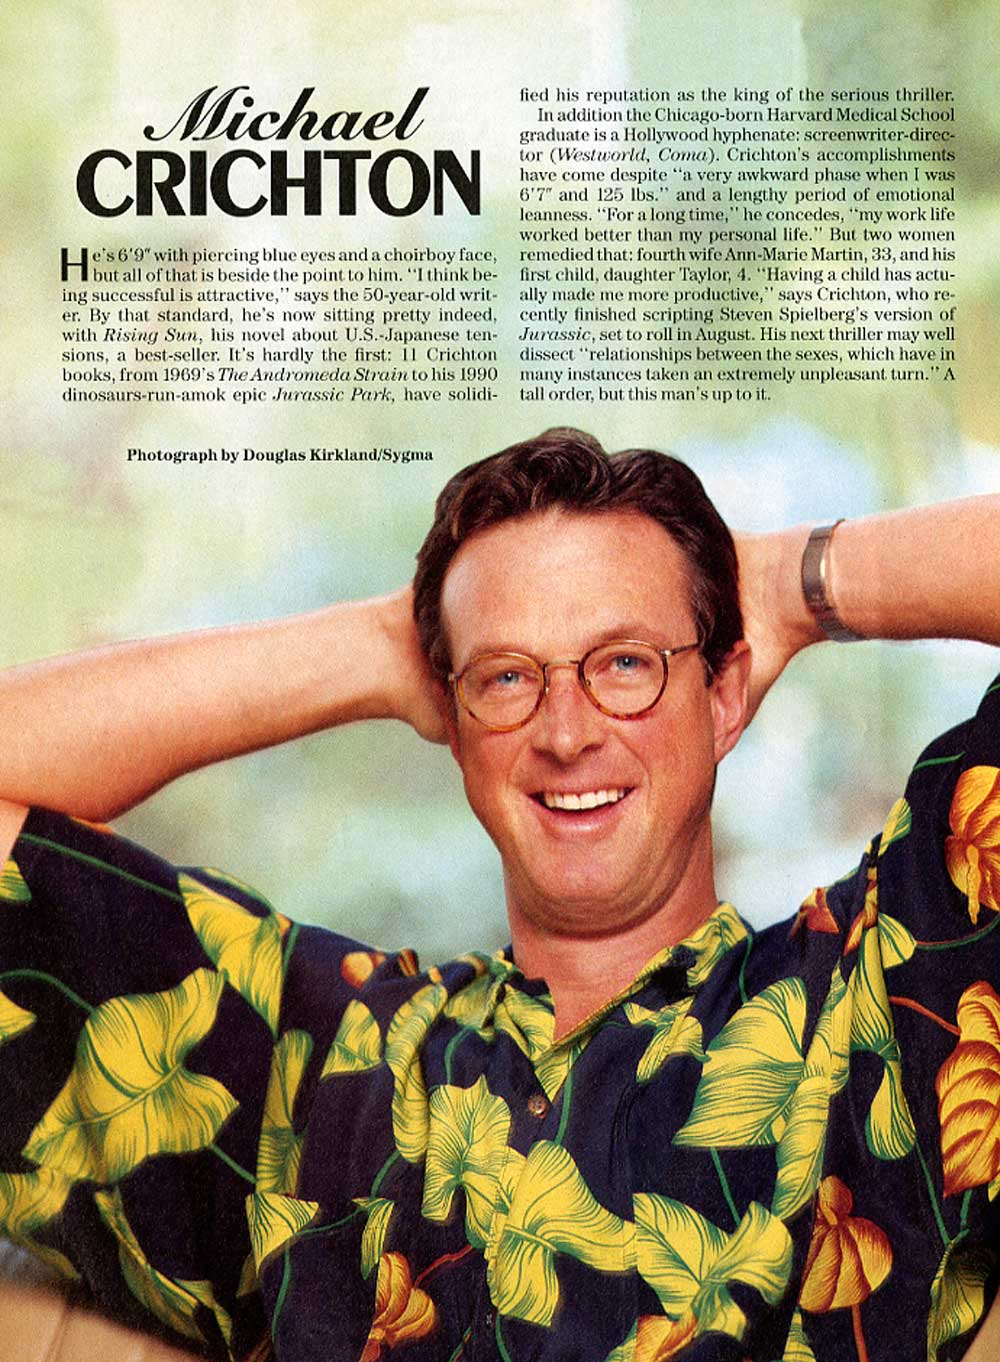 Michael Crichton in People Magazine